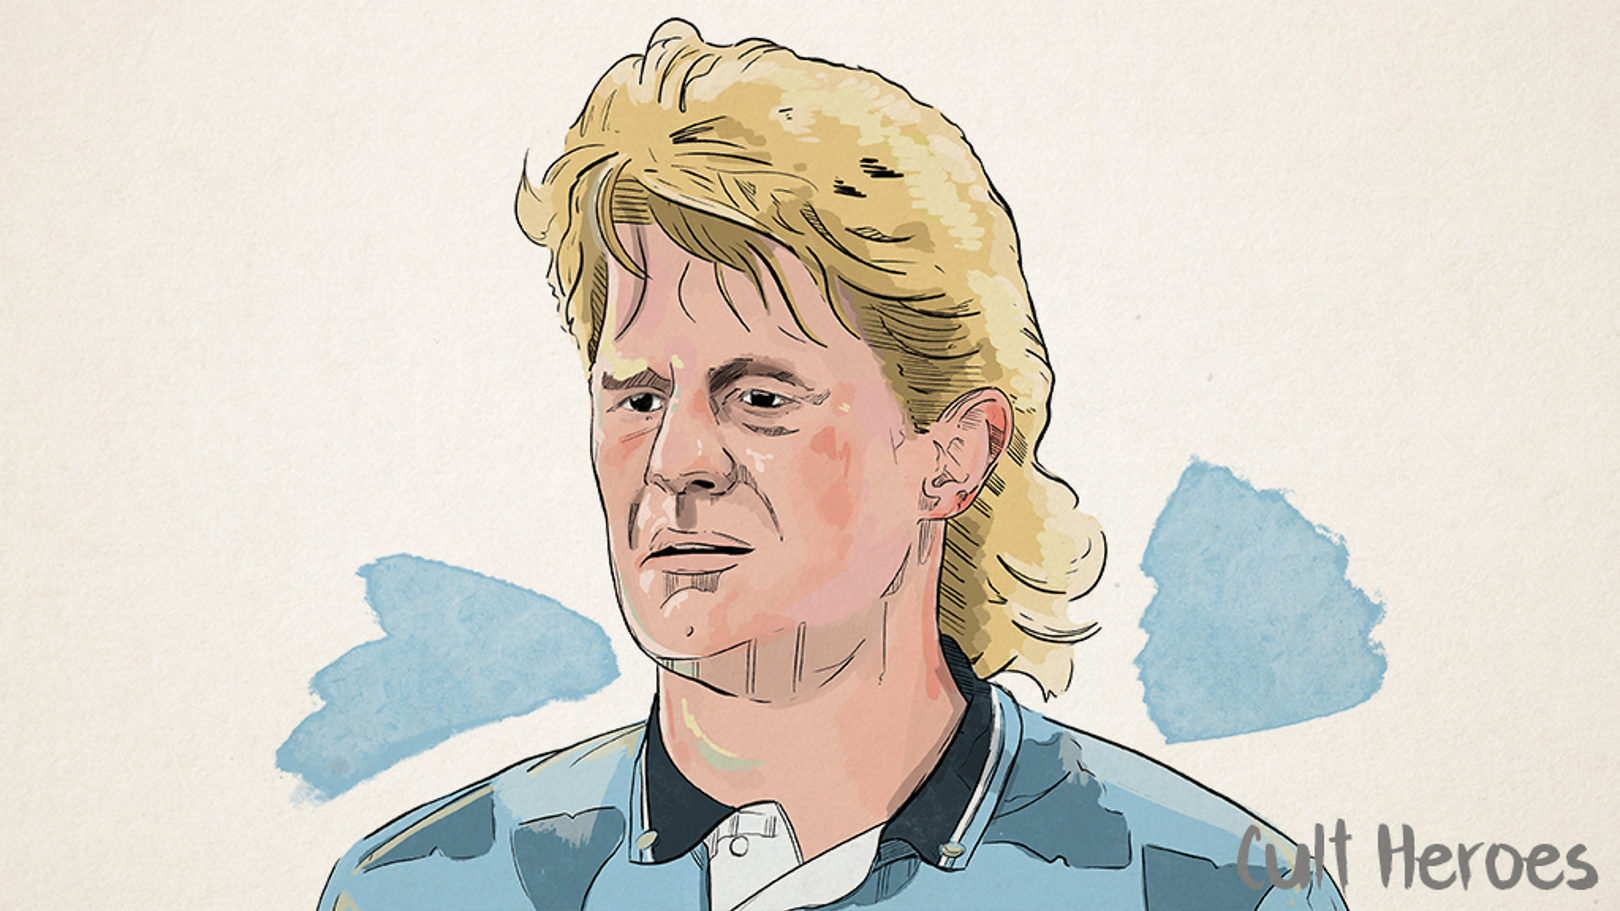 The swashbuckling centre-back: Colin Hendry